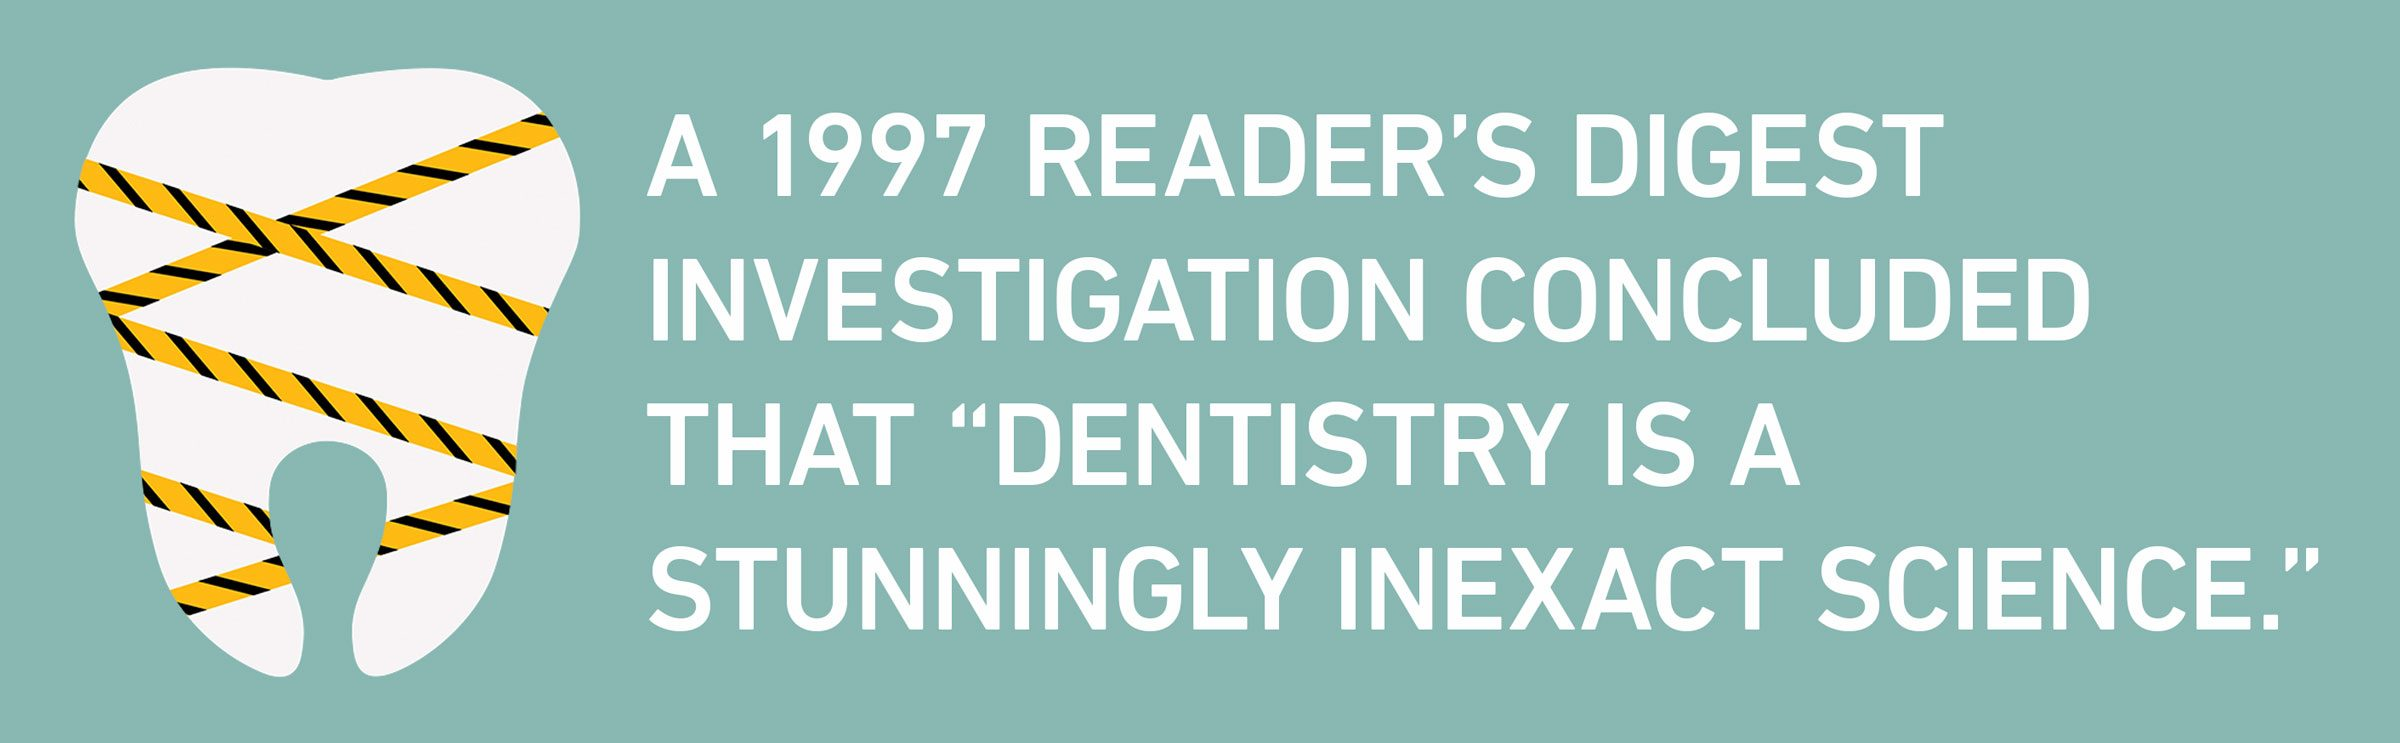 """text: A 1997 Reader's Digest investigation concluded that """"dentistry is a stunningly inexact science."""""""